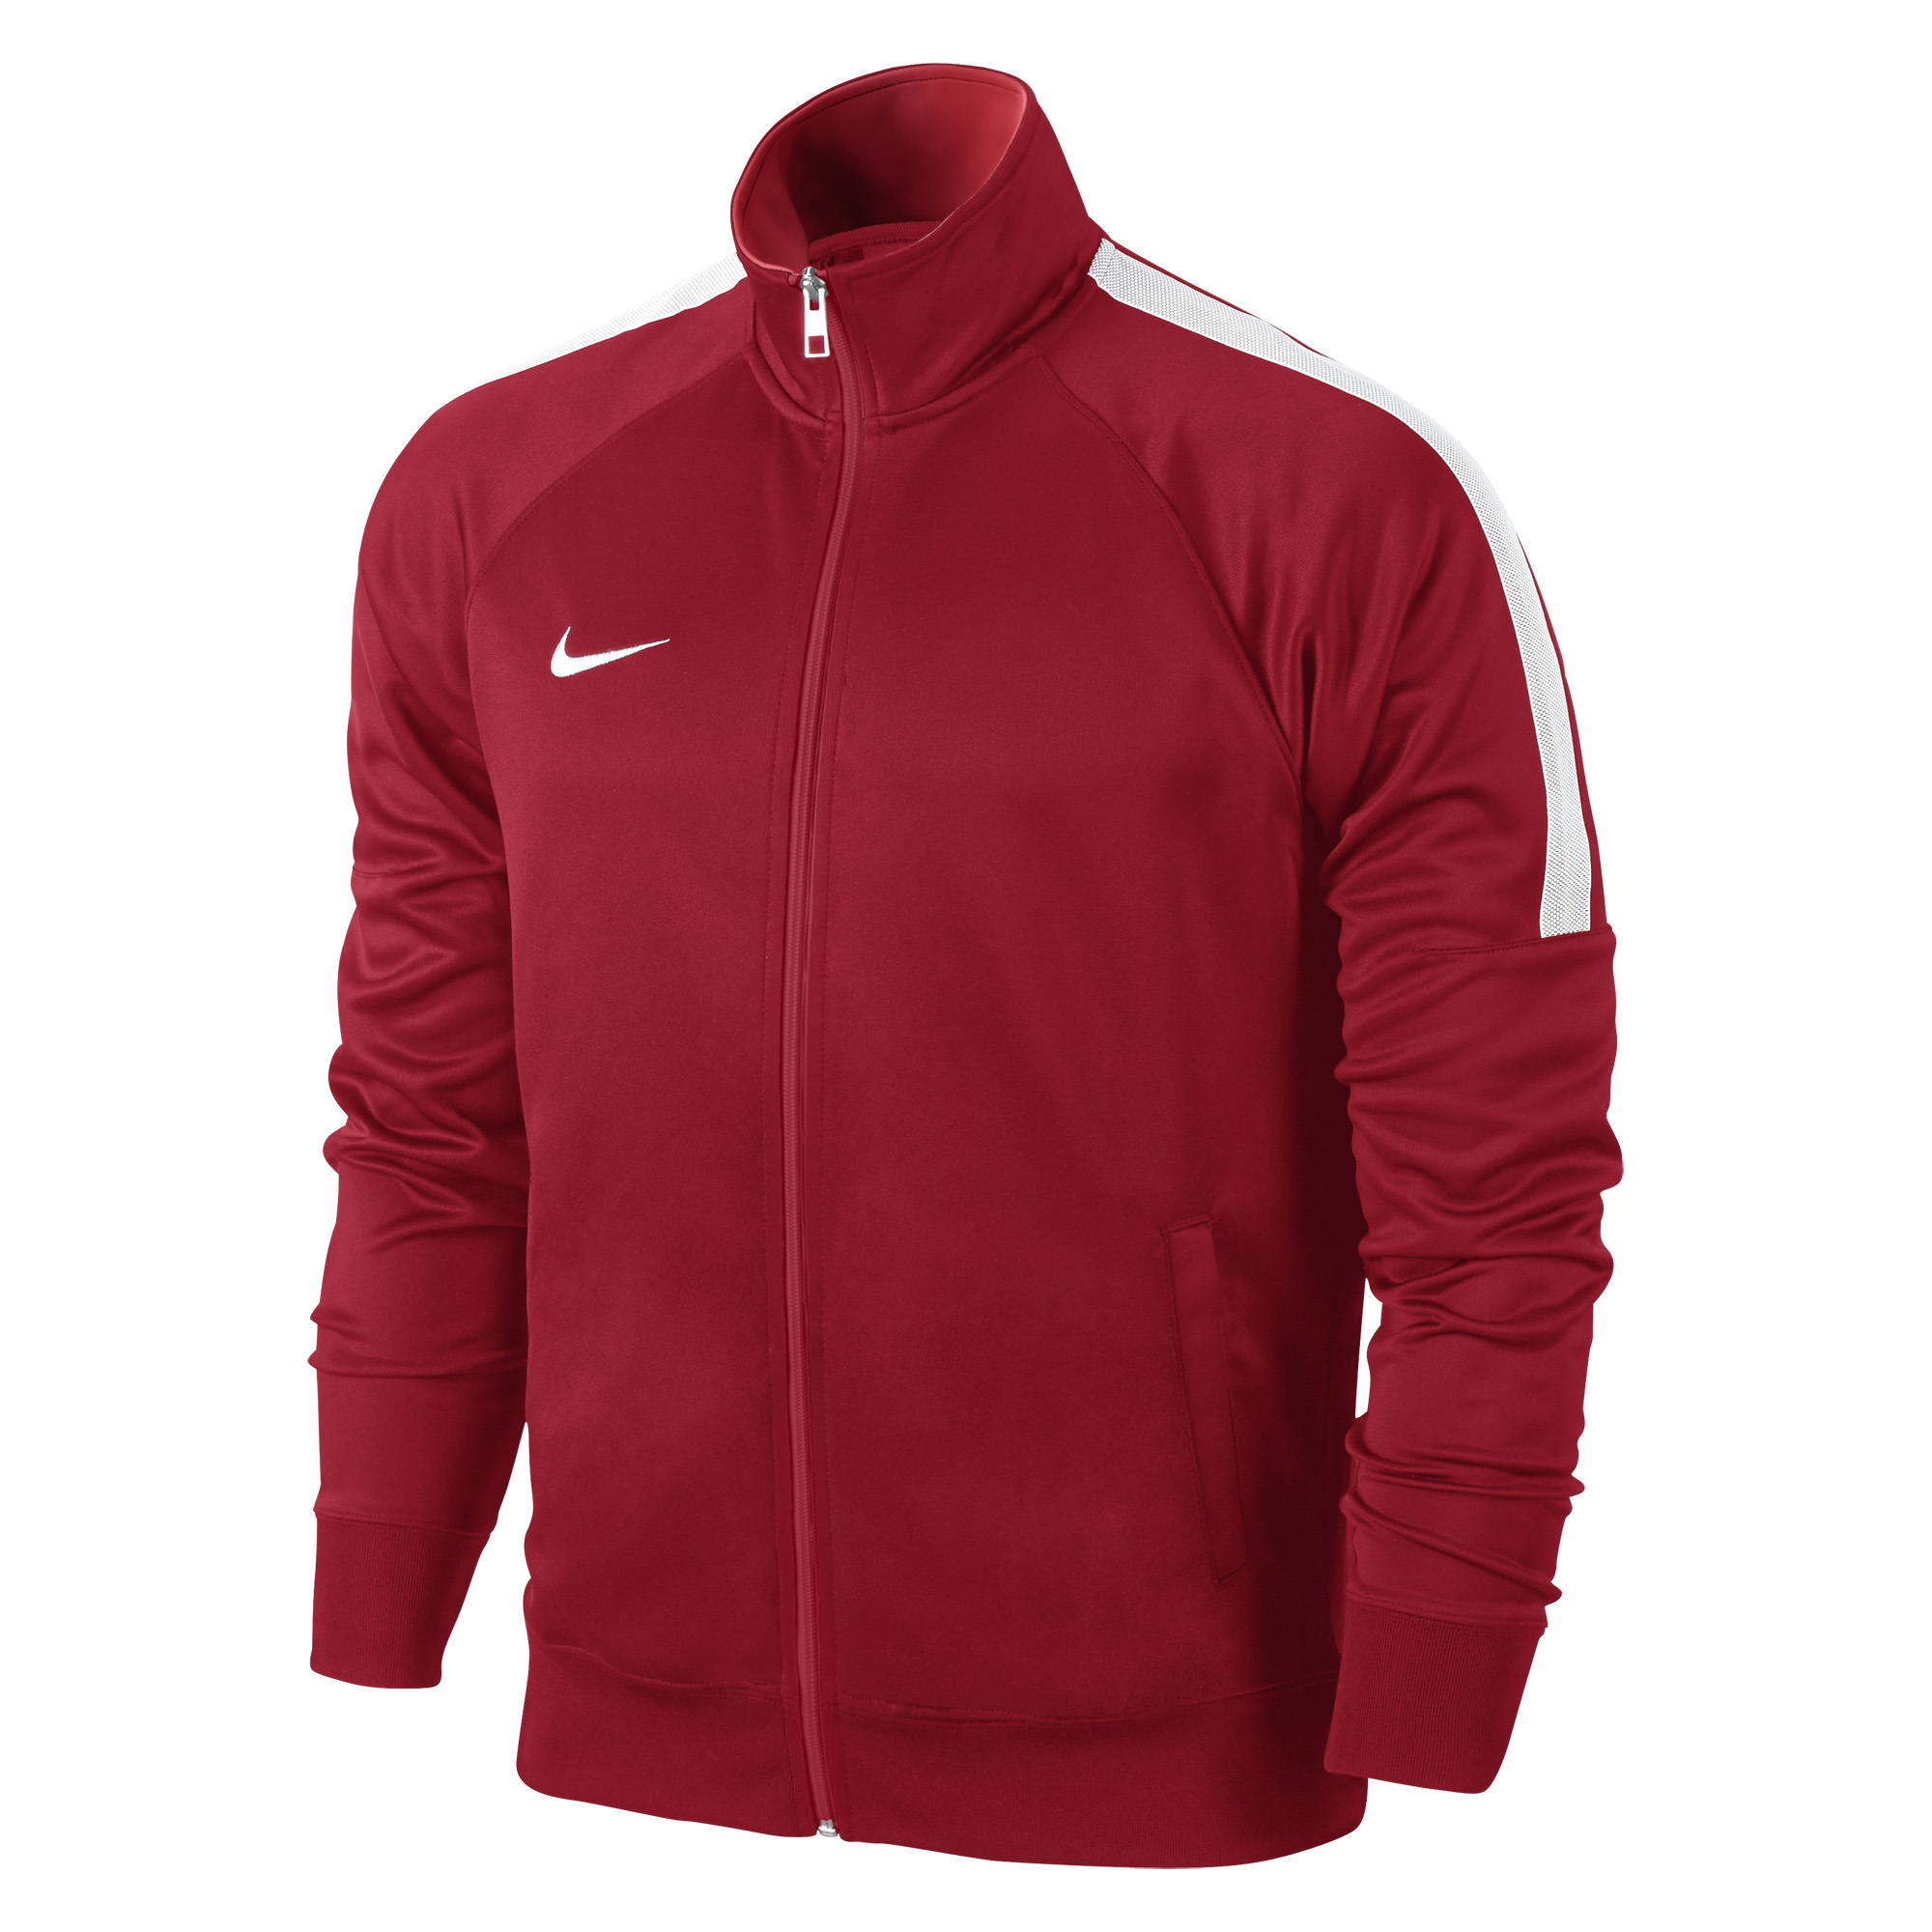 Nike Herren Trainingsjacke Team Club Trainer Jacket 658683-657 XXL